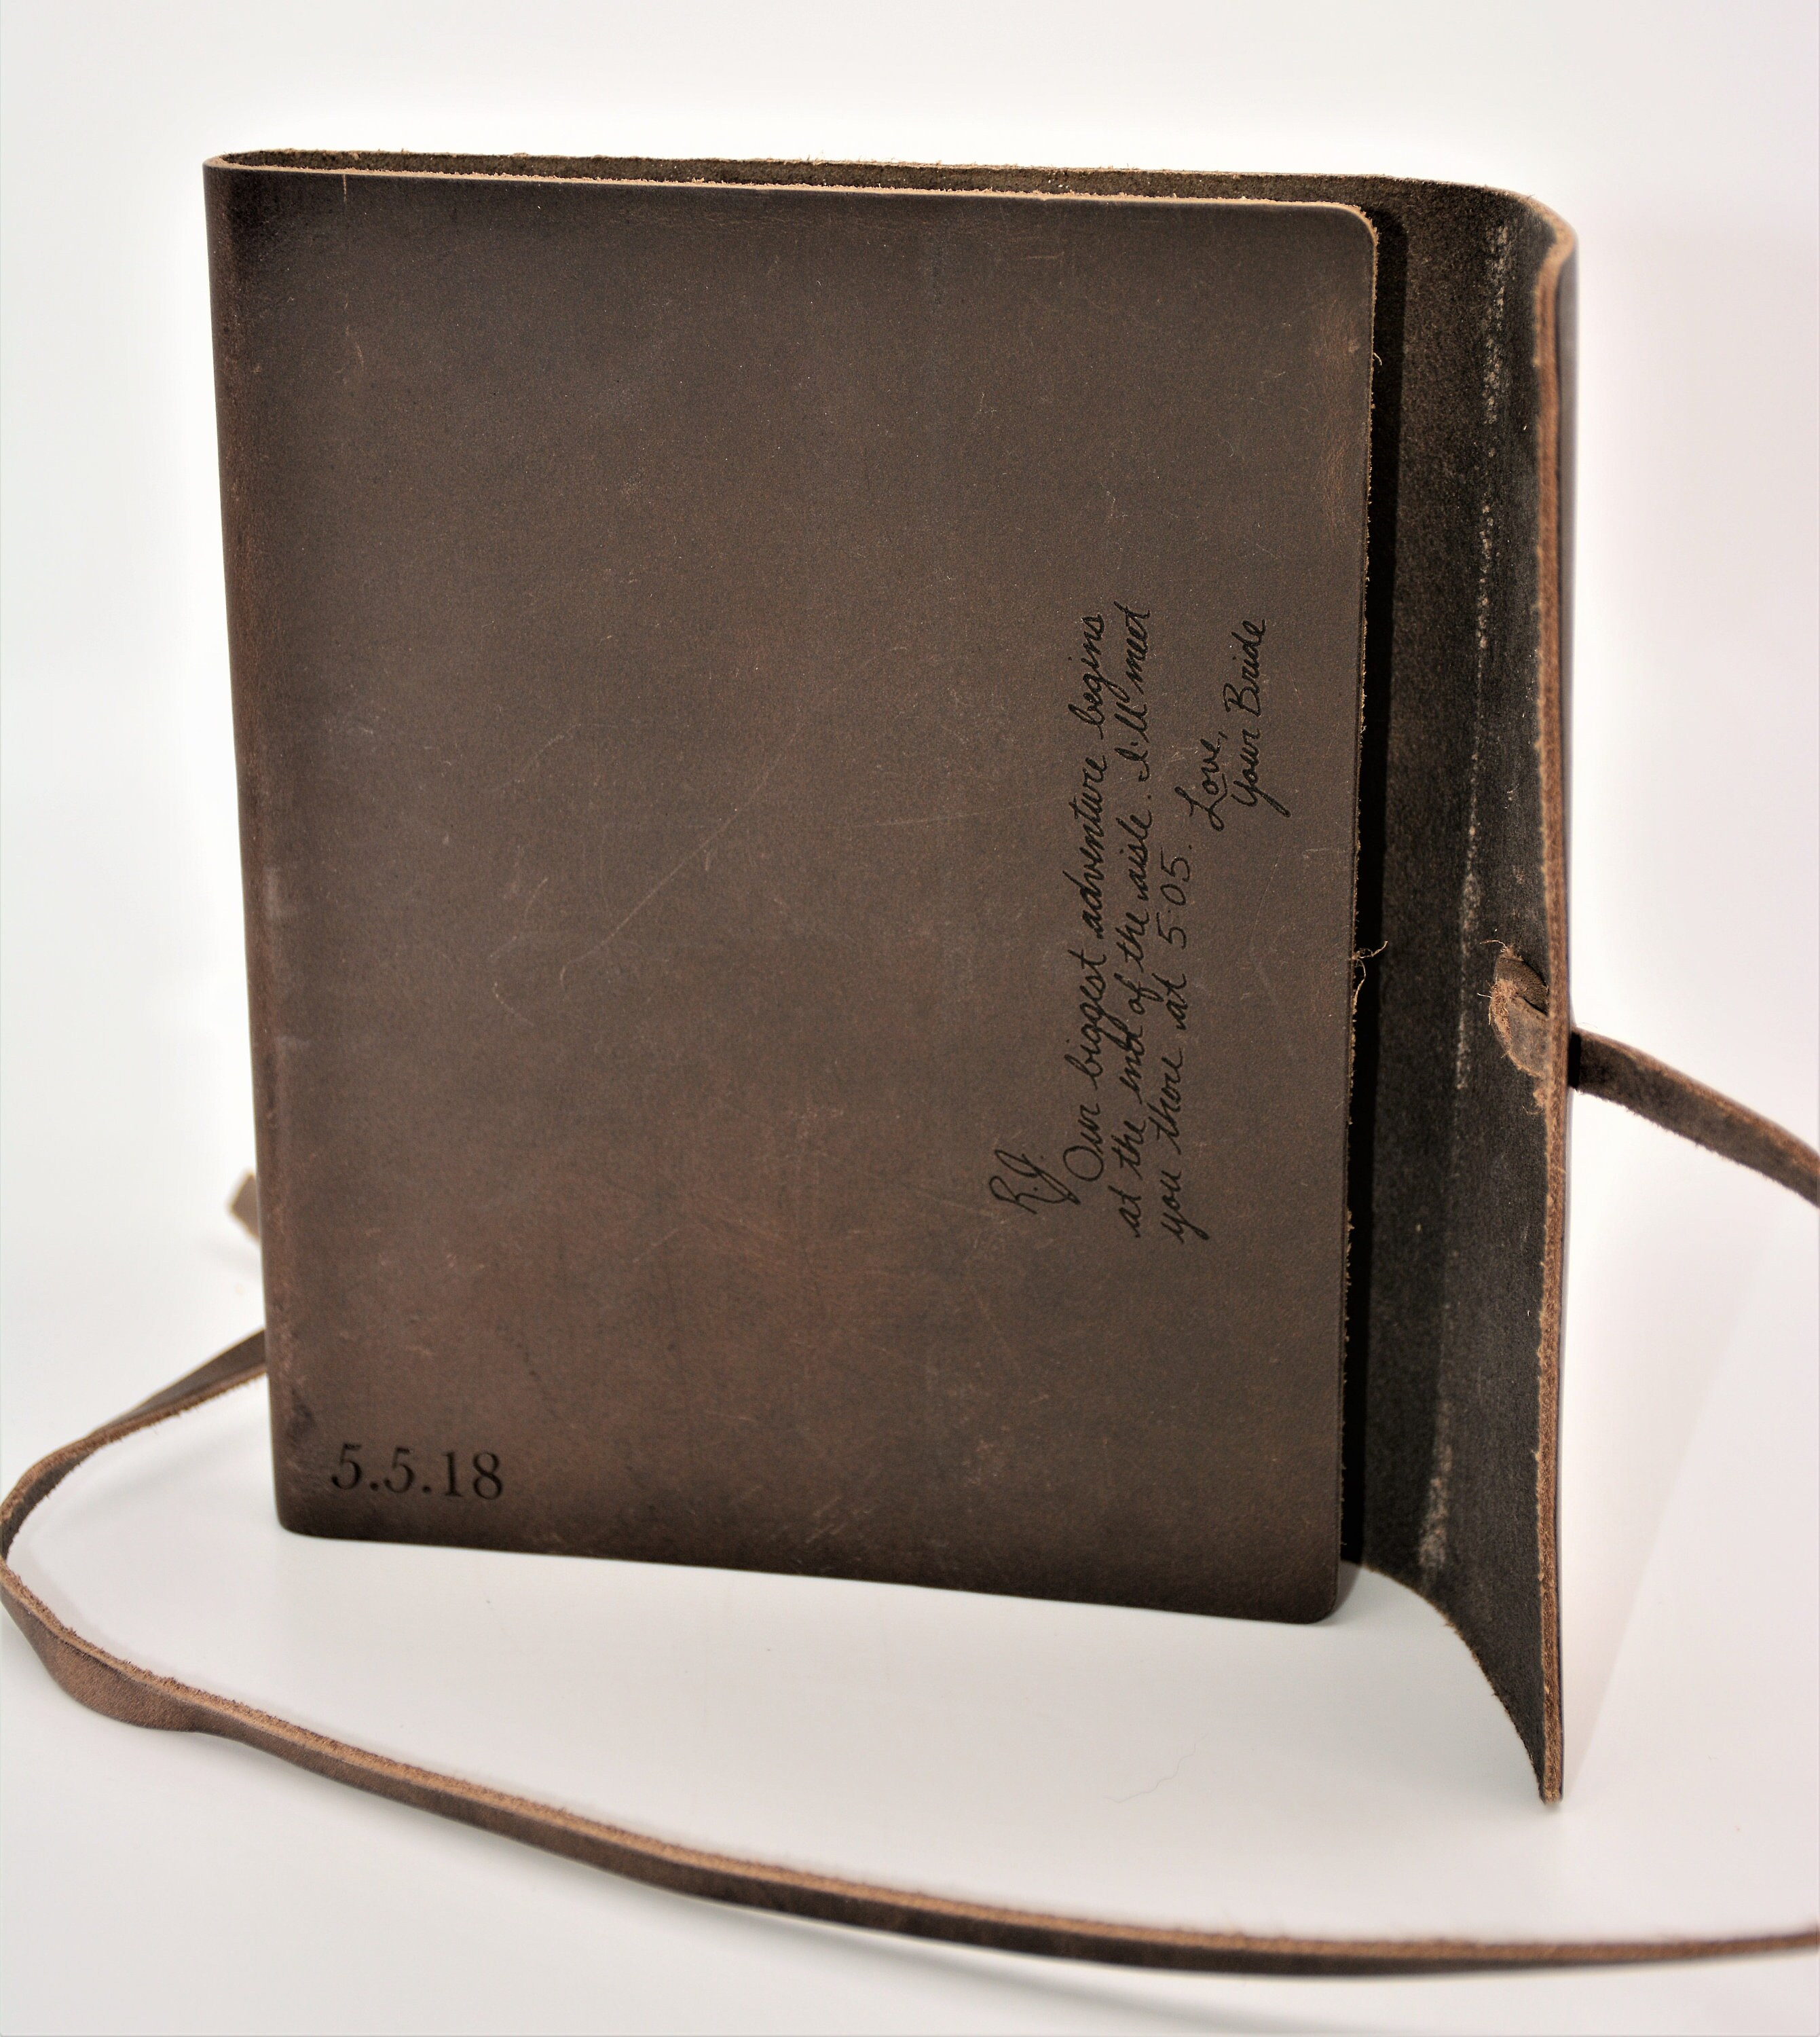 Premium Leather Journal Personalized Custom Engraved image 5